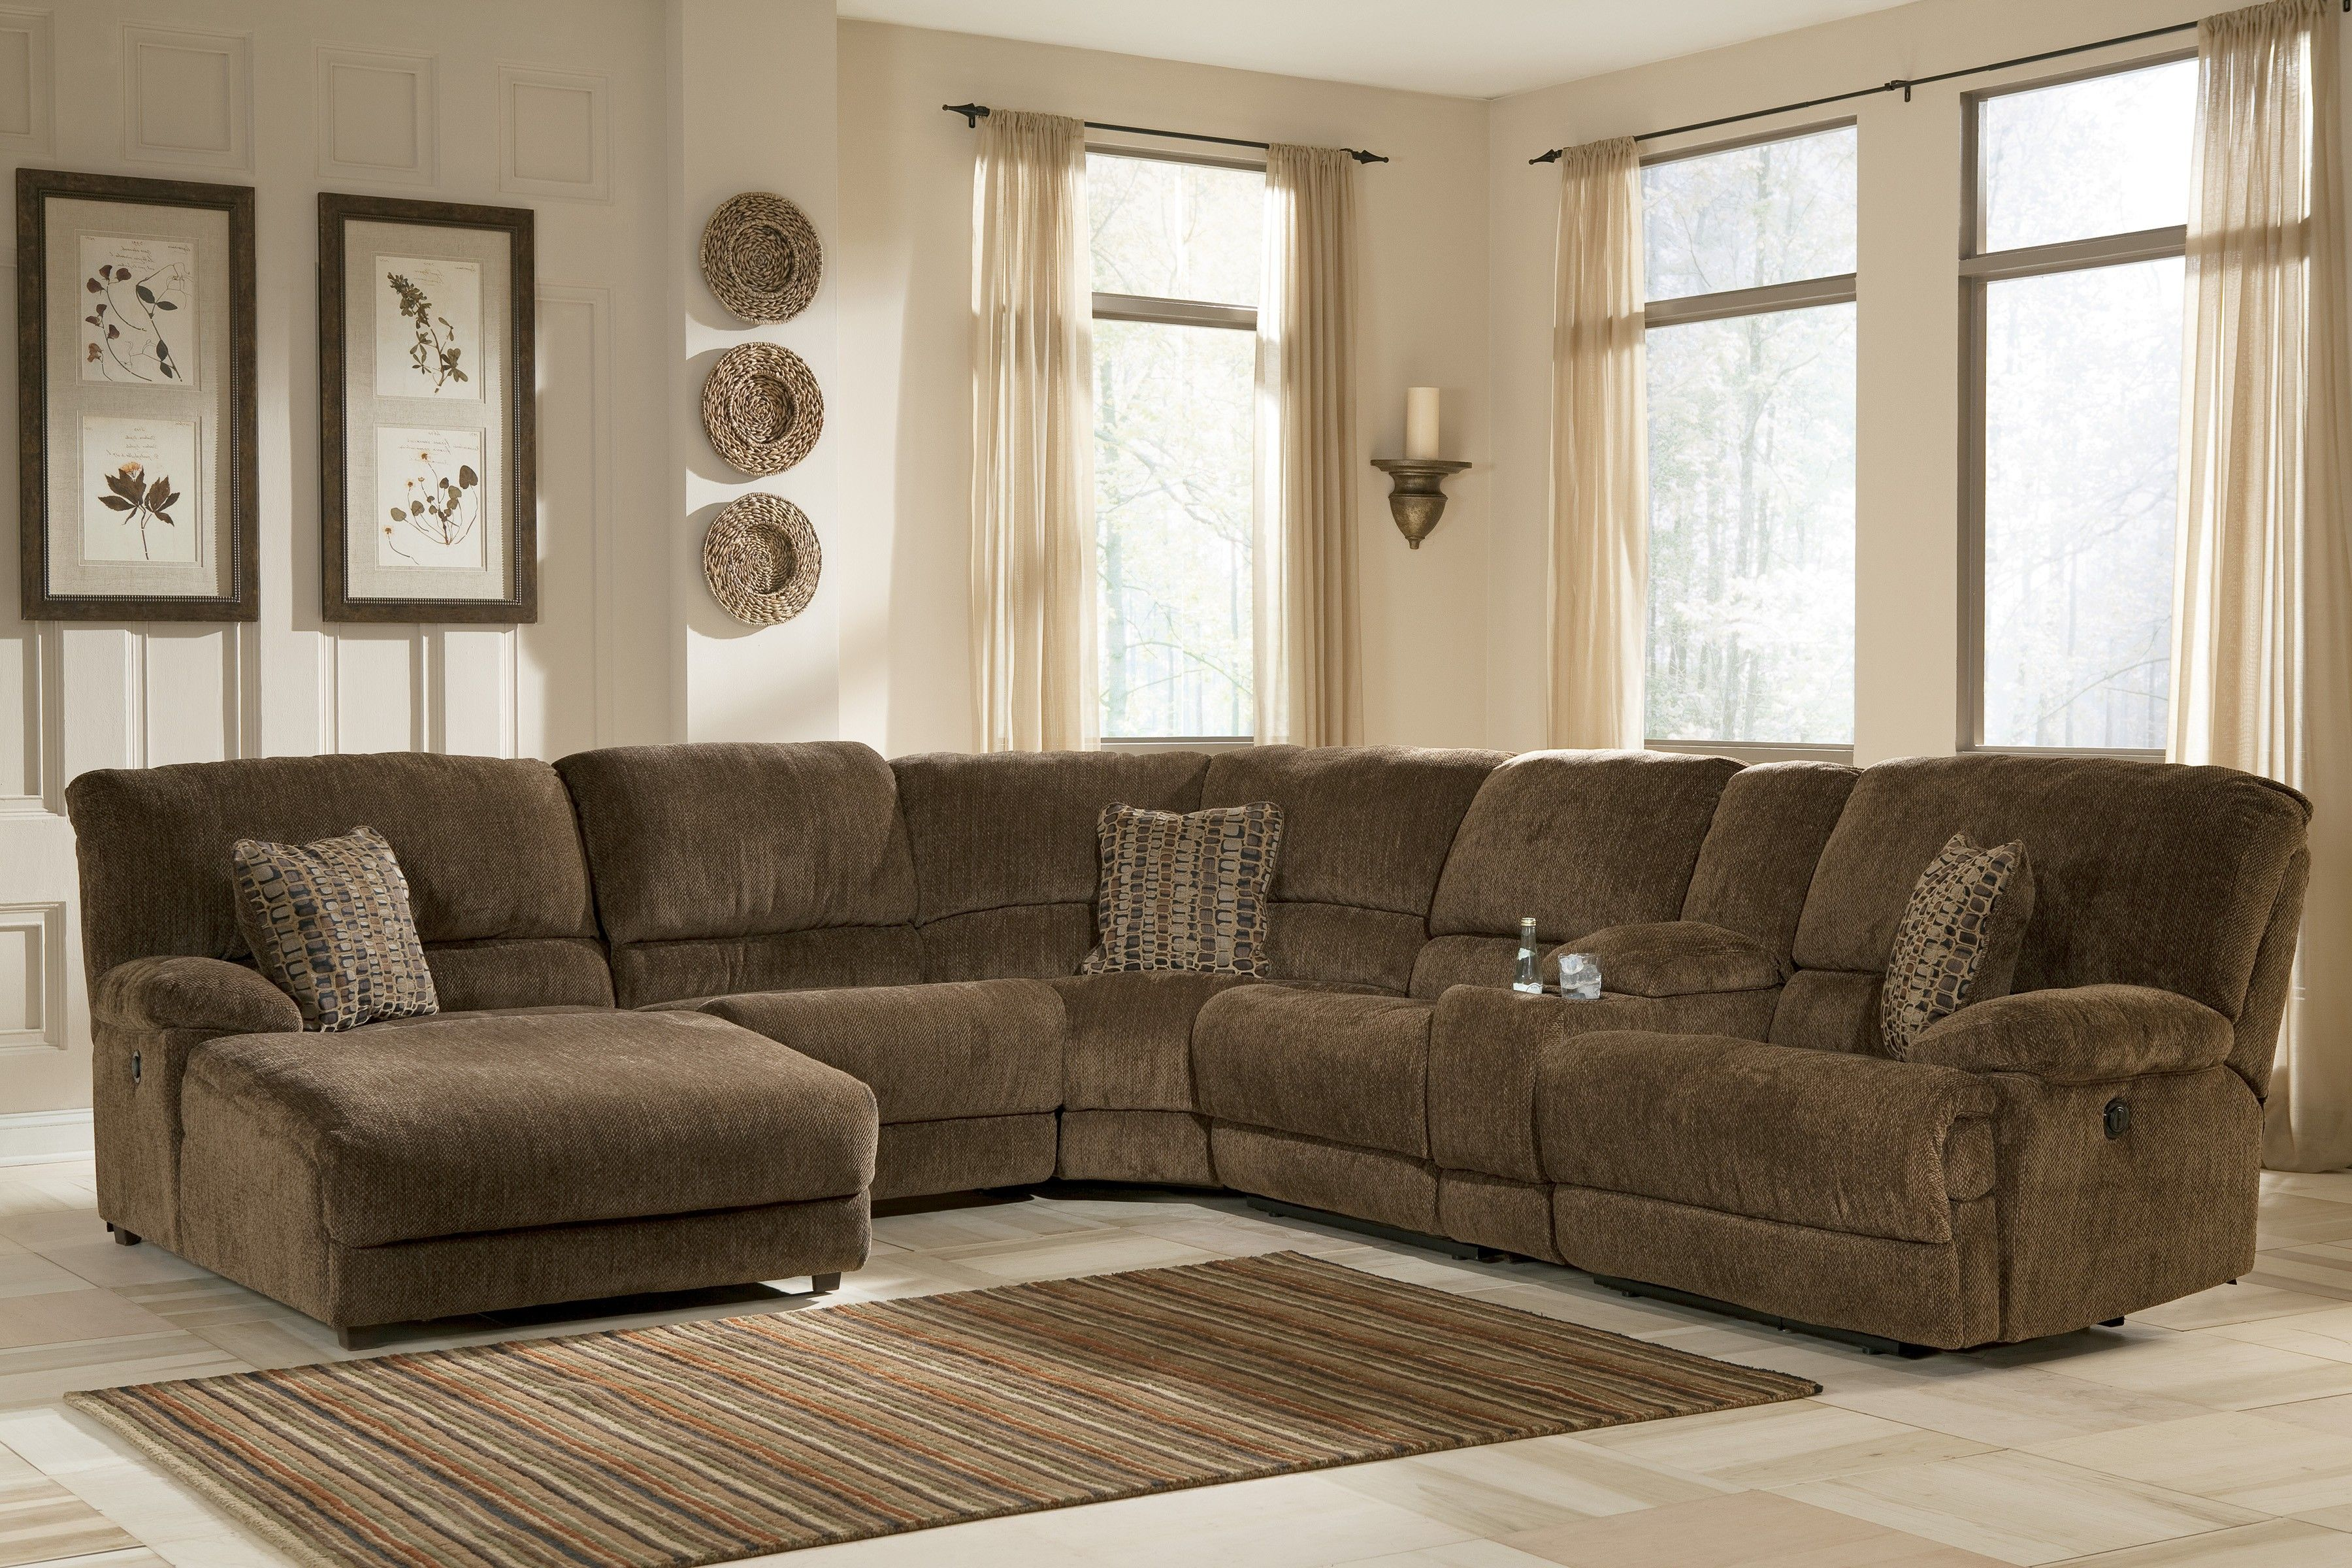 Pin By Selbicconsult On Sofas Couches Sectional Sofa With